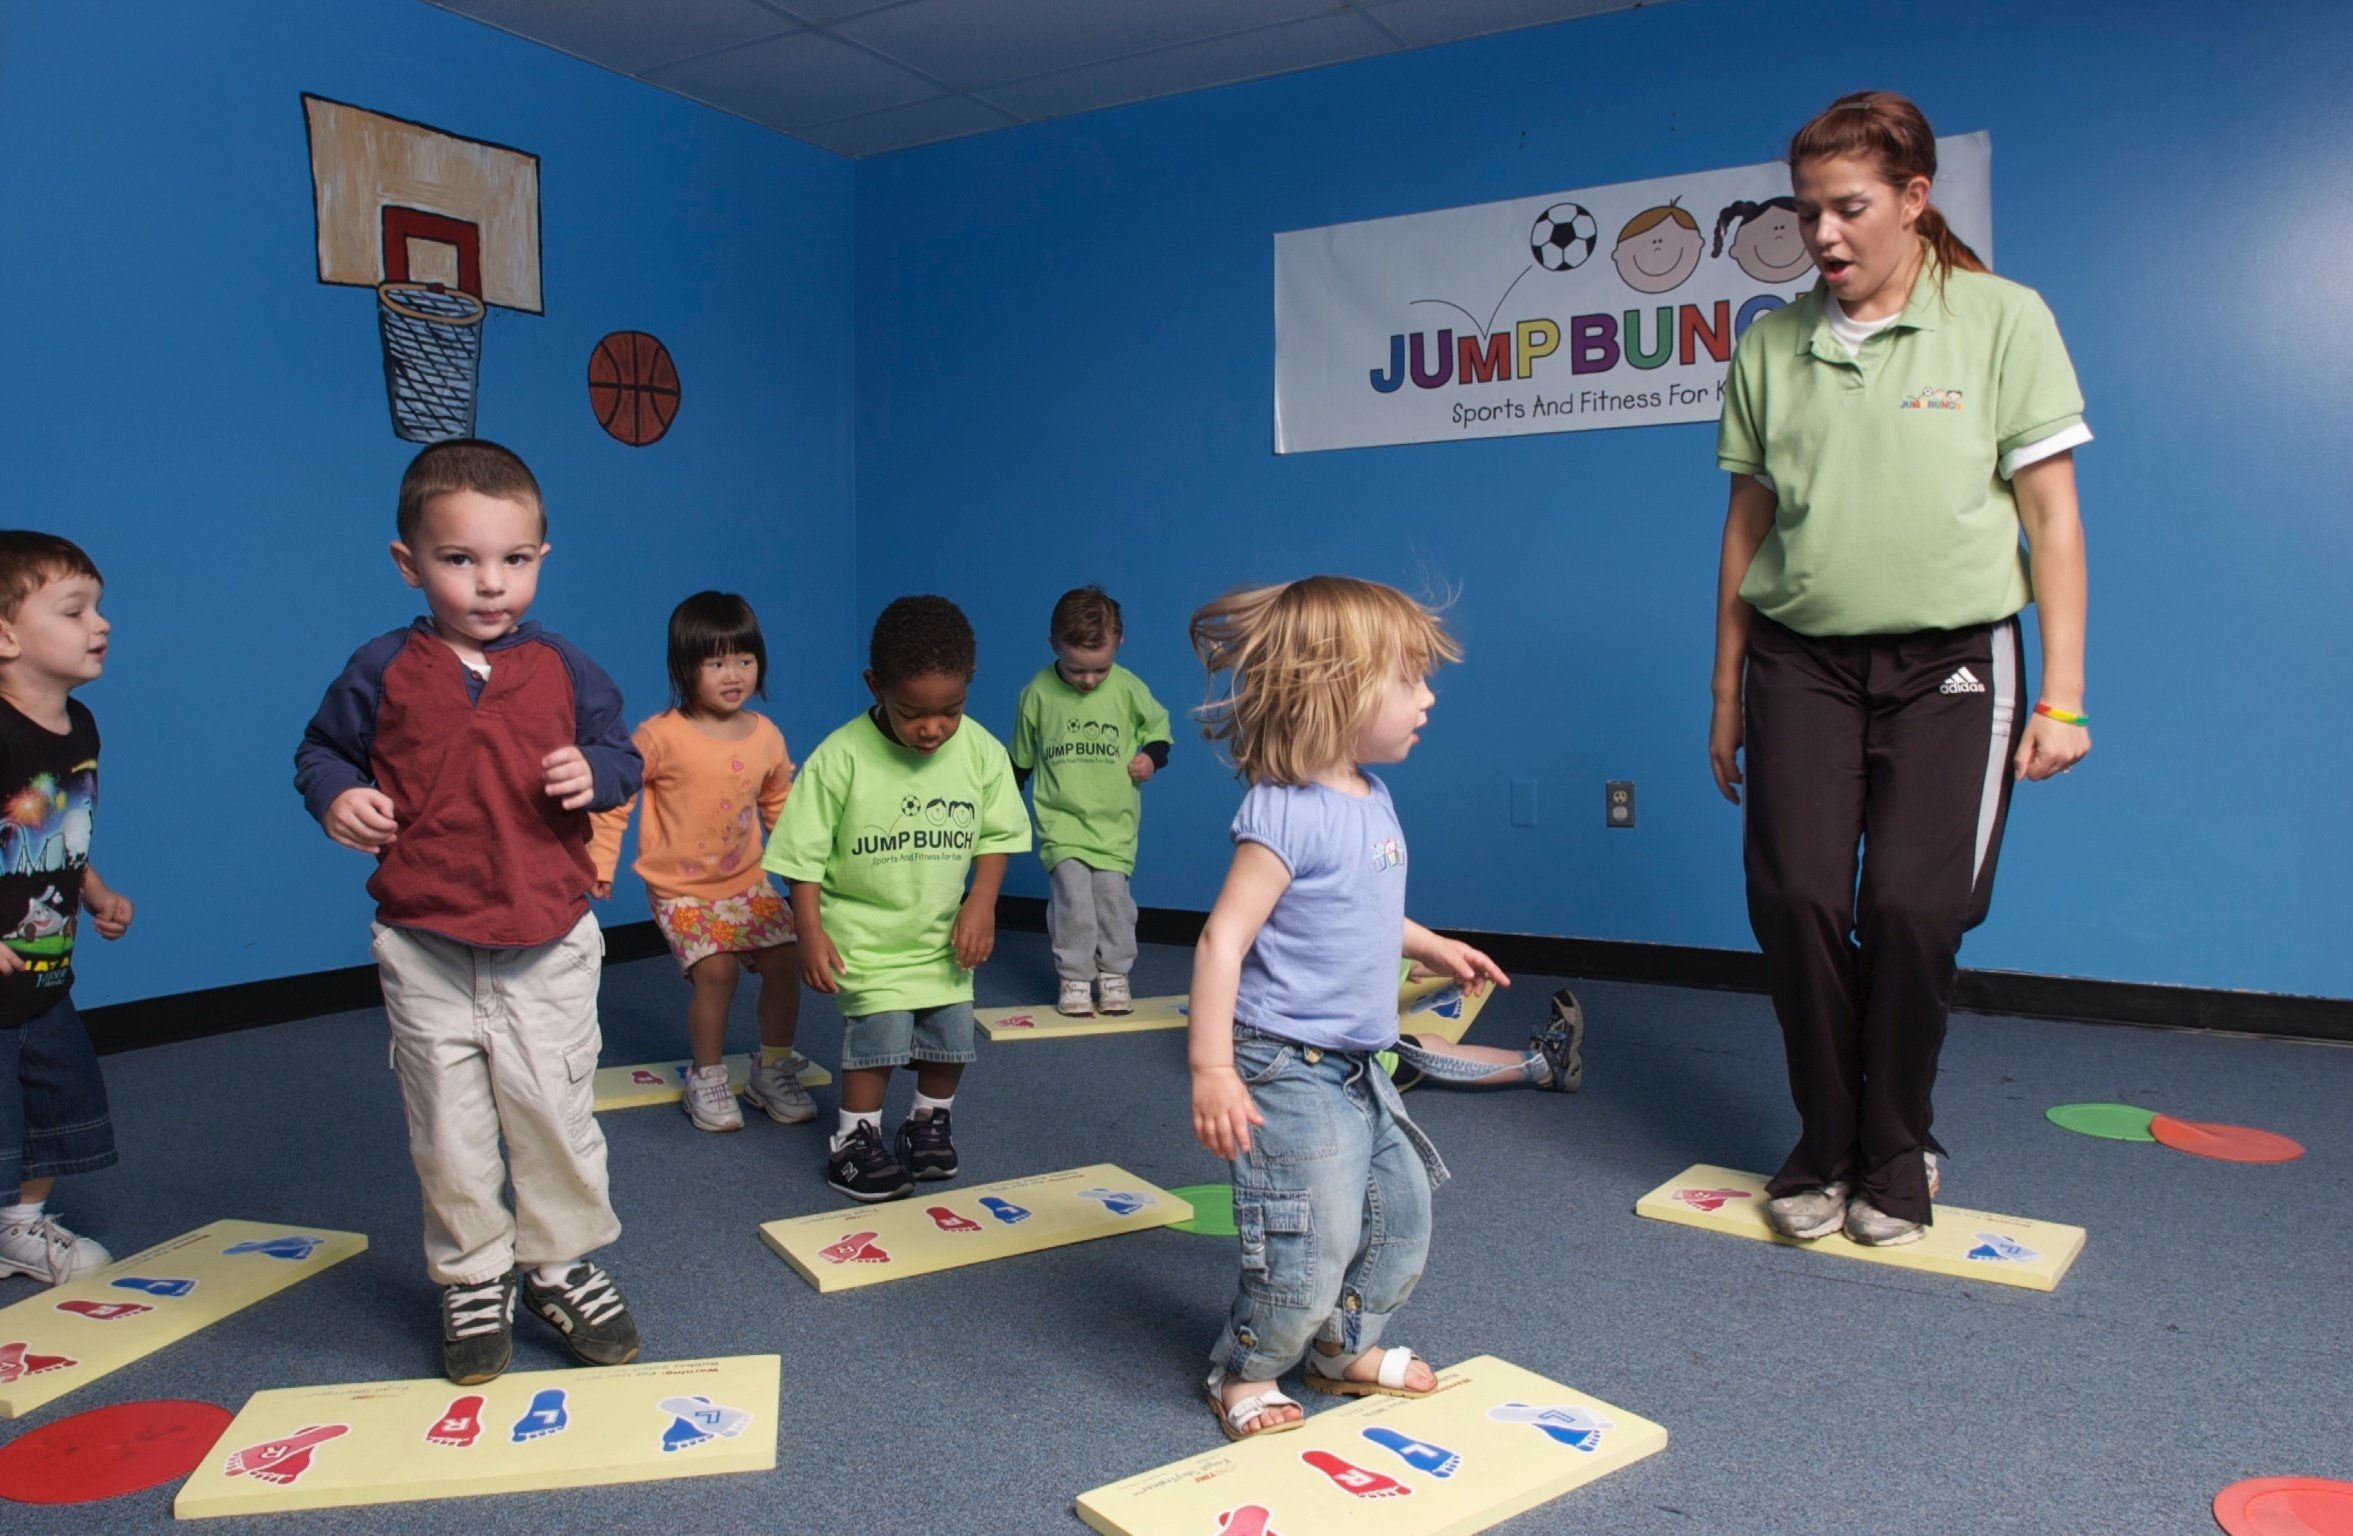 JumpBunch SE Long Island | A Friendly Introduction to Sports and Fitness!